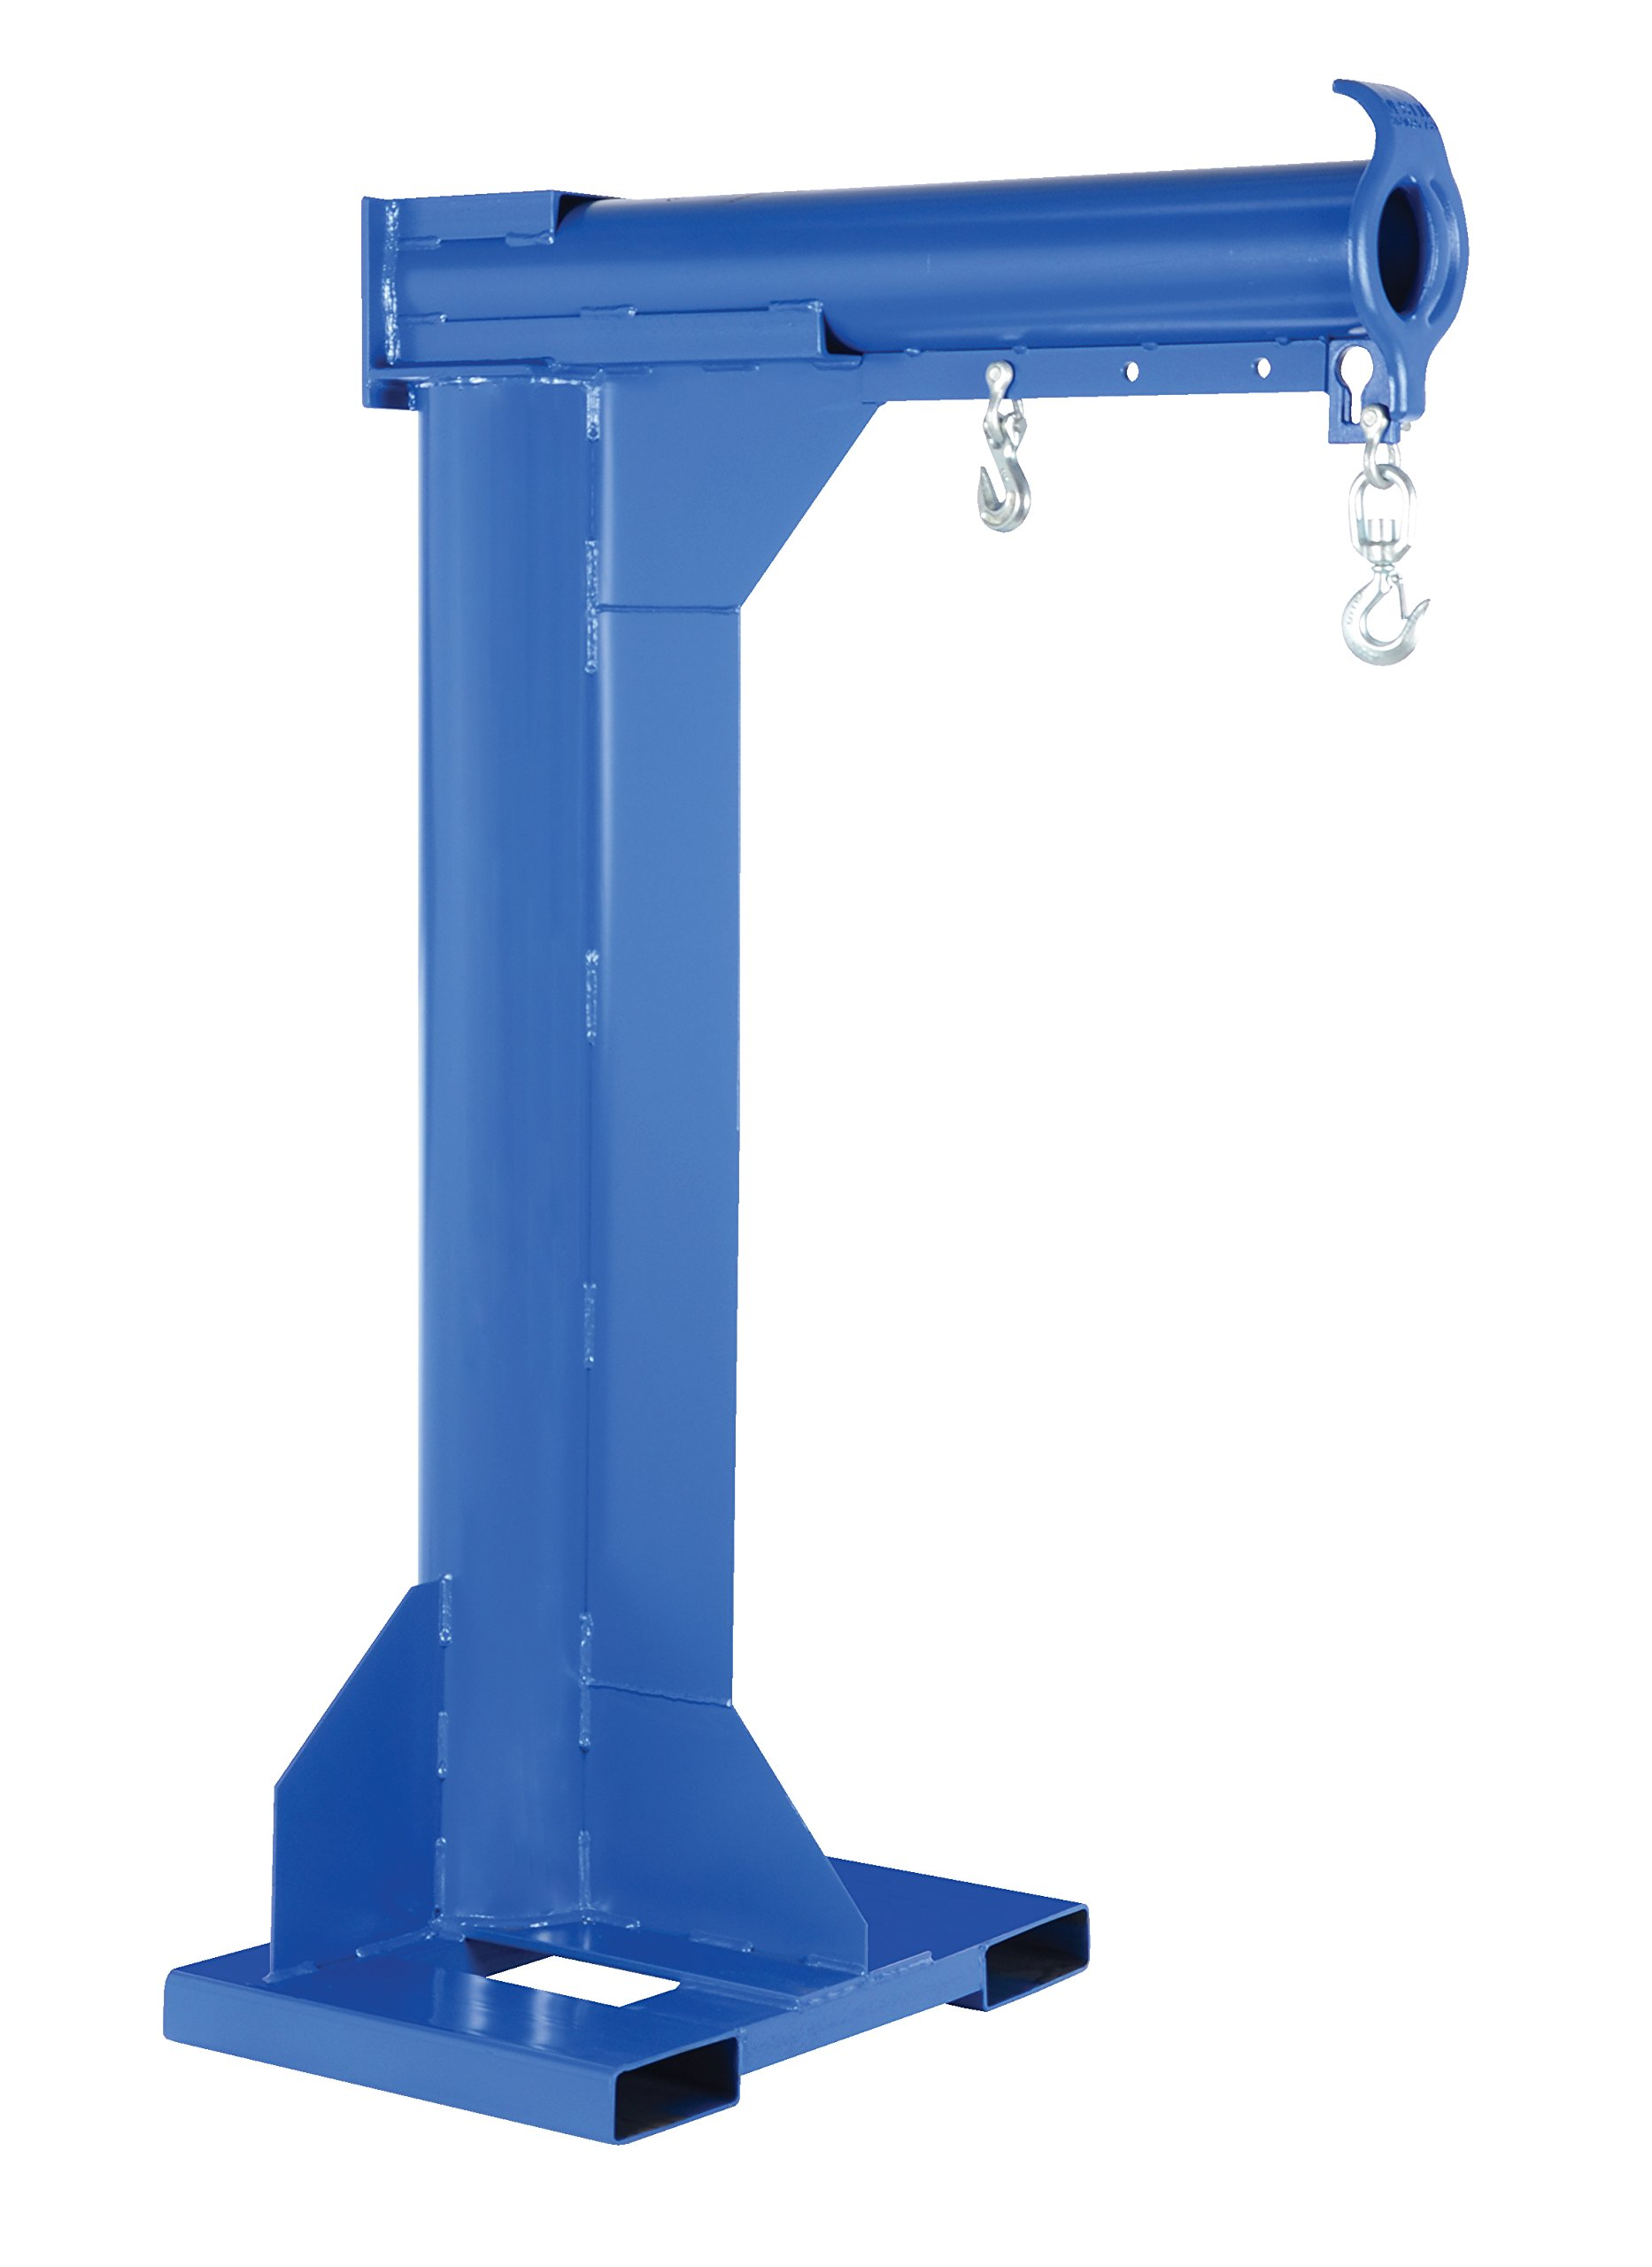 "Vestil LM-HRNT-4-30 Steel Non-Telescoping High Rise Boom, 4000 lb Capacity, 30"" Fork Pocket Center, Overall LxWxH (in.) 38 x 50.375 x 78.5625, Overall Extended Length (in.) 50-3/8, Blue"